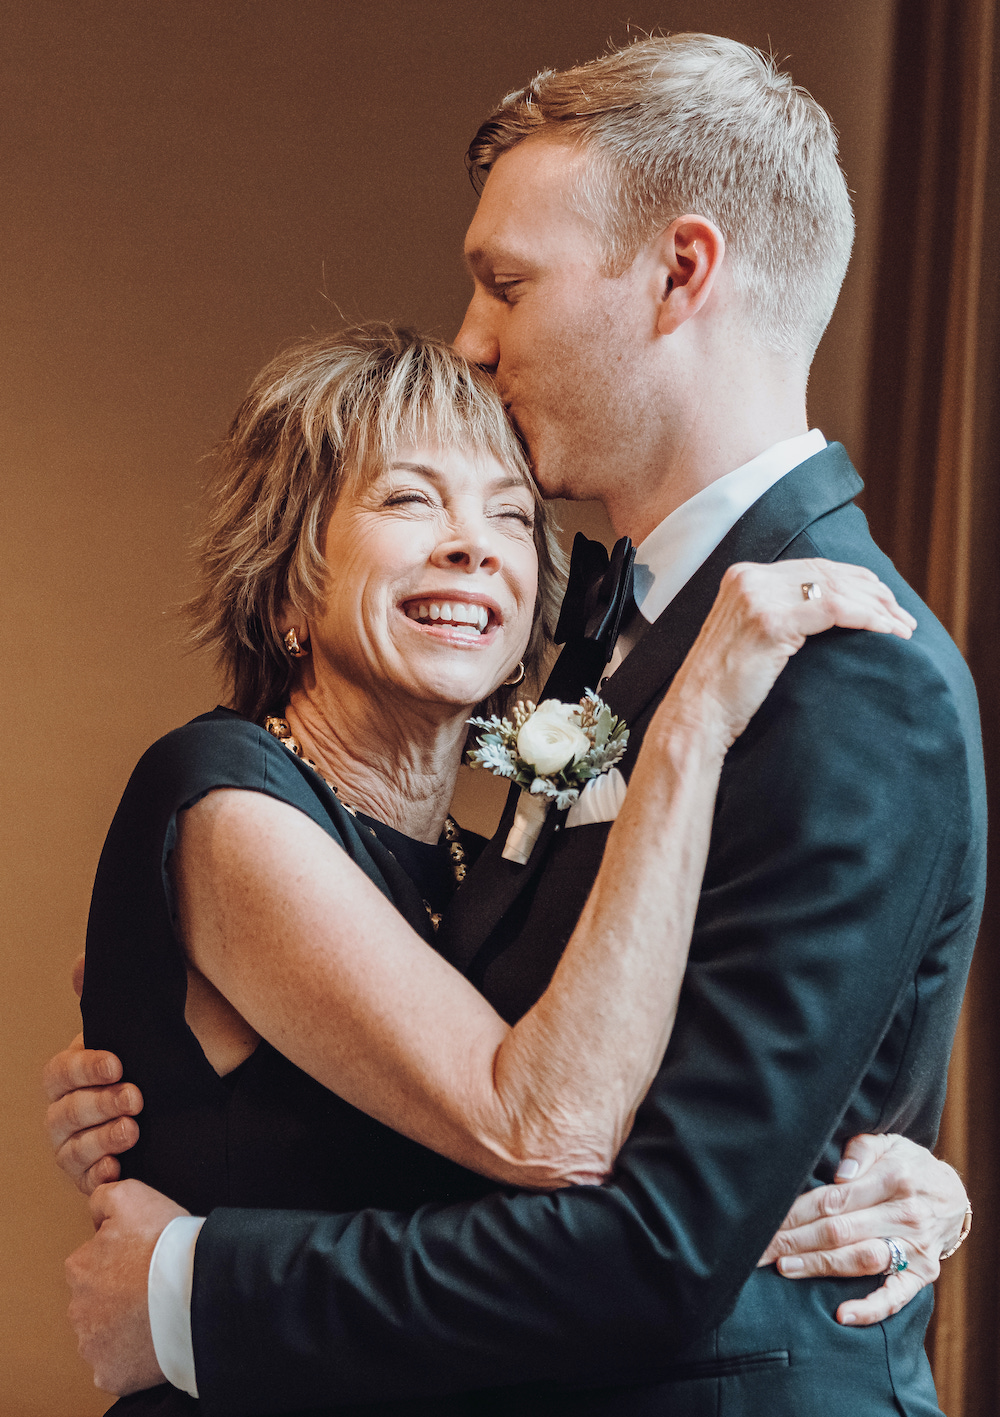 Groom in black tuxedo embracing his mother as they laugh.